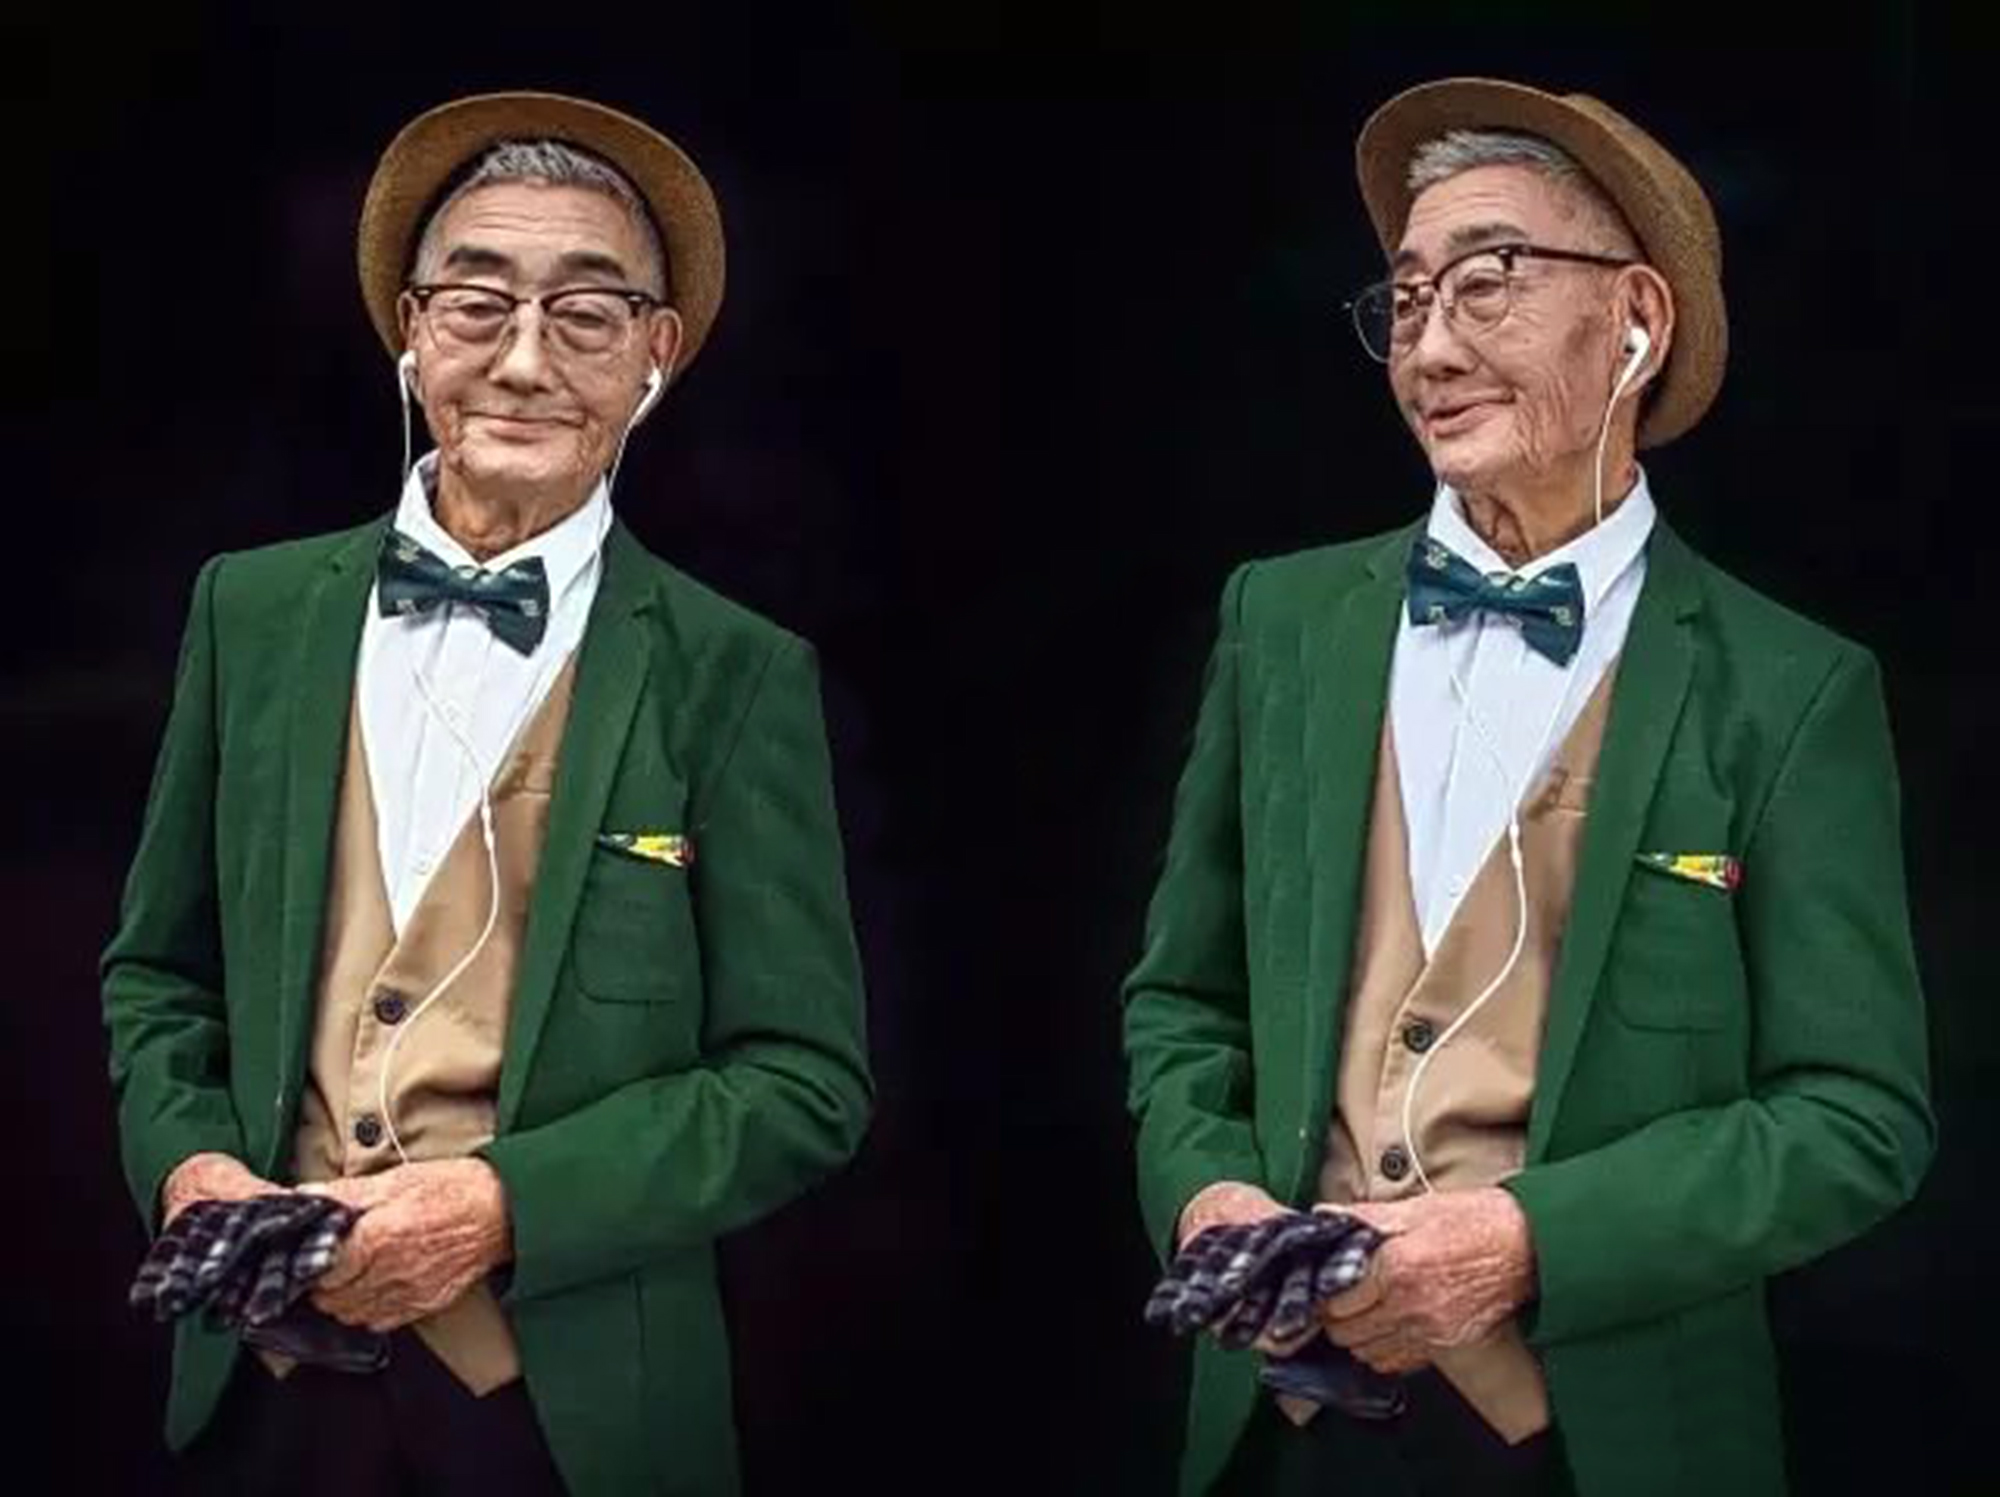 Hunting for new style inspiration? Look no further than this dapper 85-year-old man